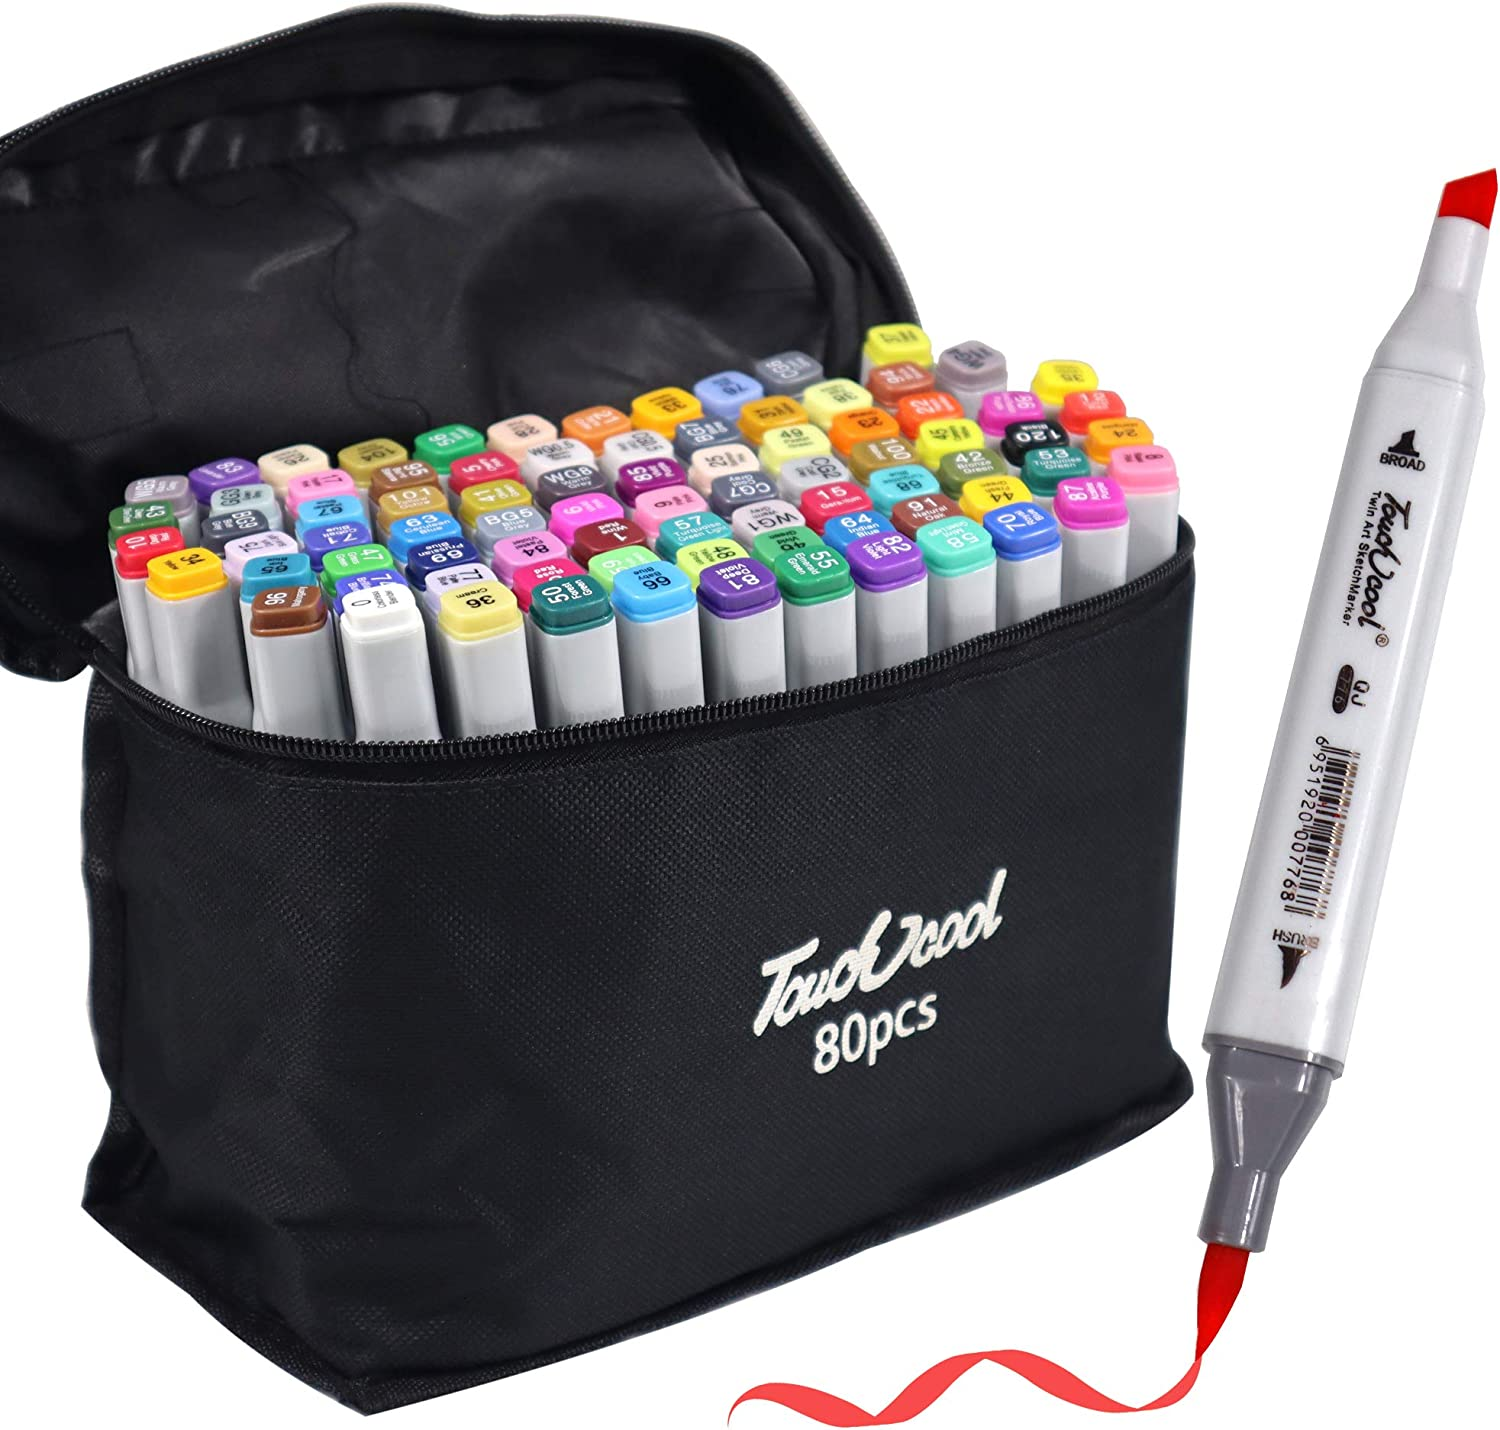 Brush Tip 81 Colors Alcohol Art Markers, Advanced Dual Tip, Plus 1 Blender Marker with Thick Packing, Permanent Sketch Markers for Kids, Adults Coloring and Artist Illustration